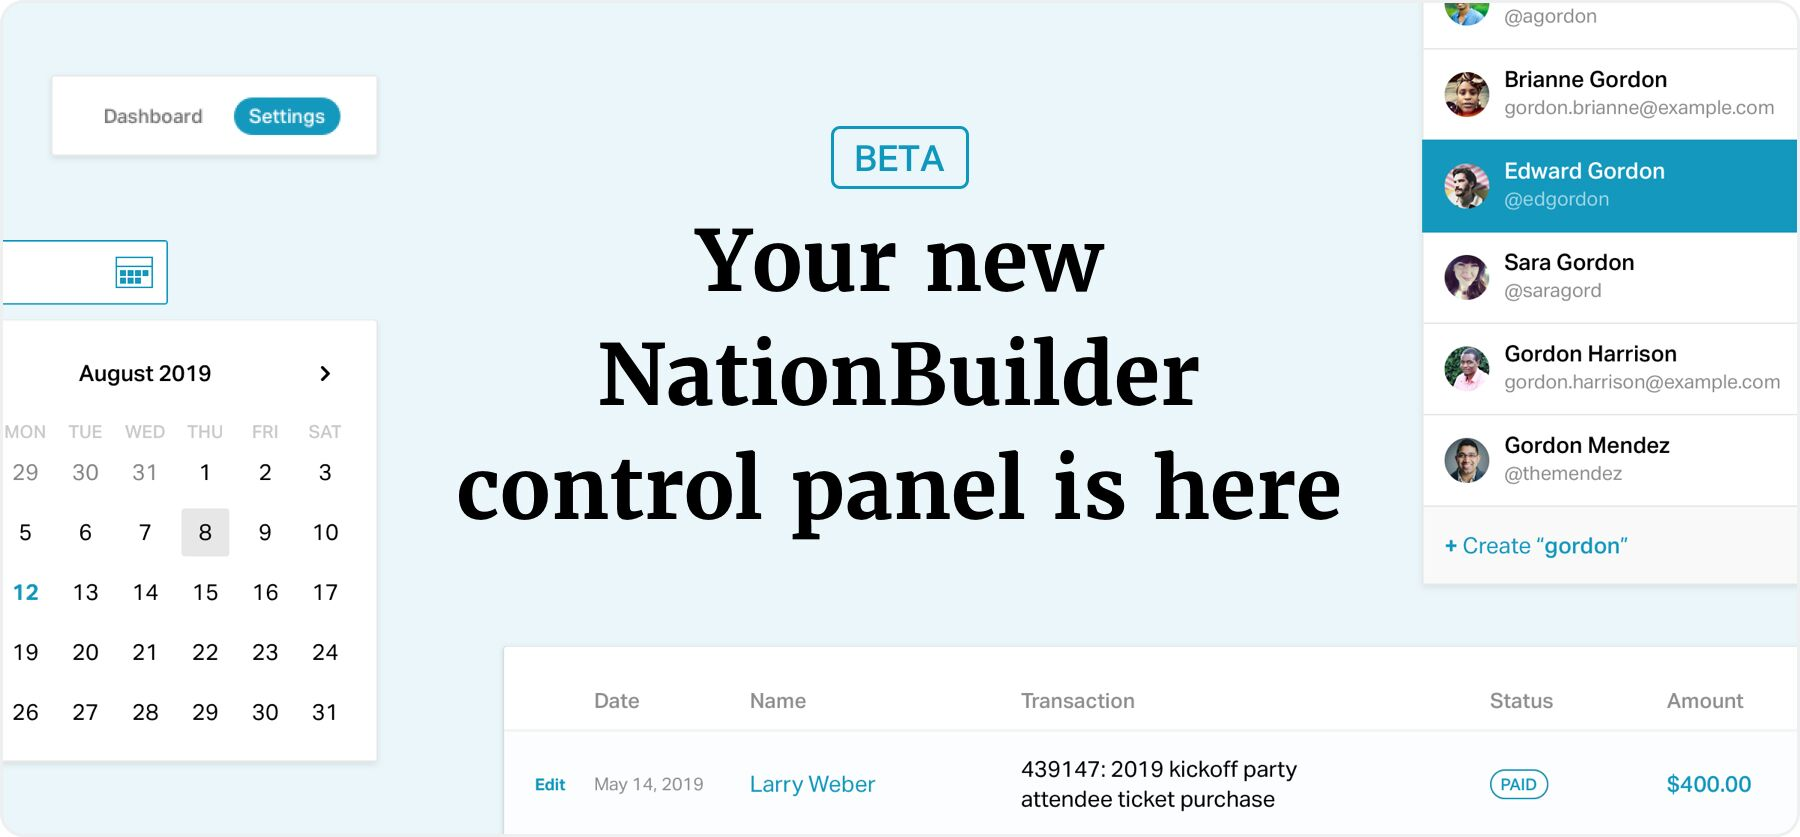 Your new NationBuilder conrtol panel is here